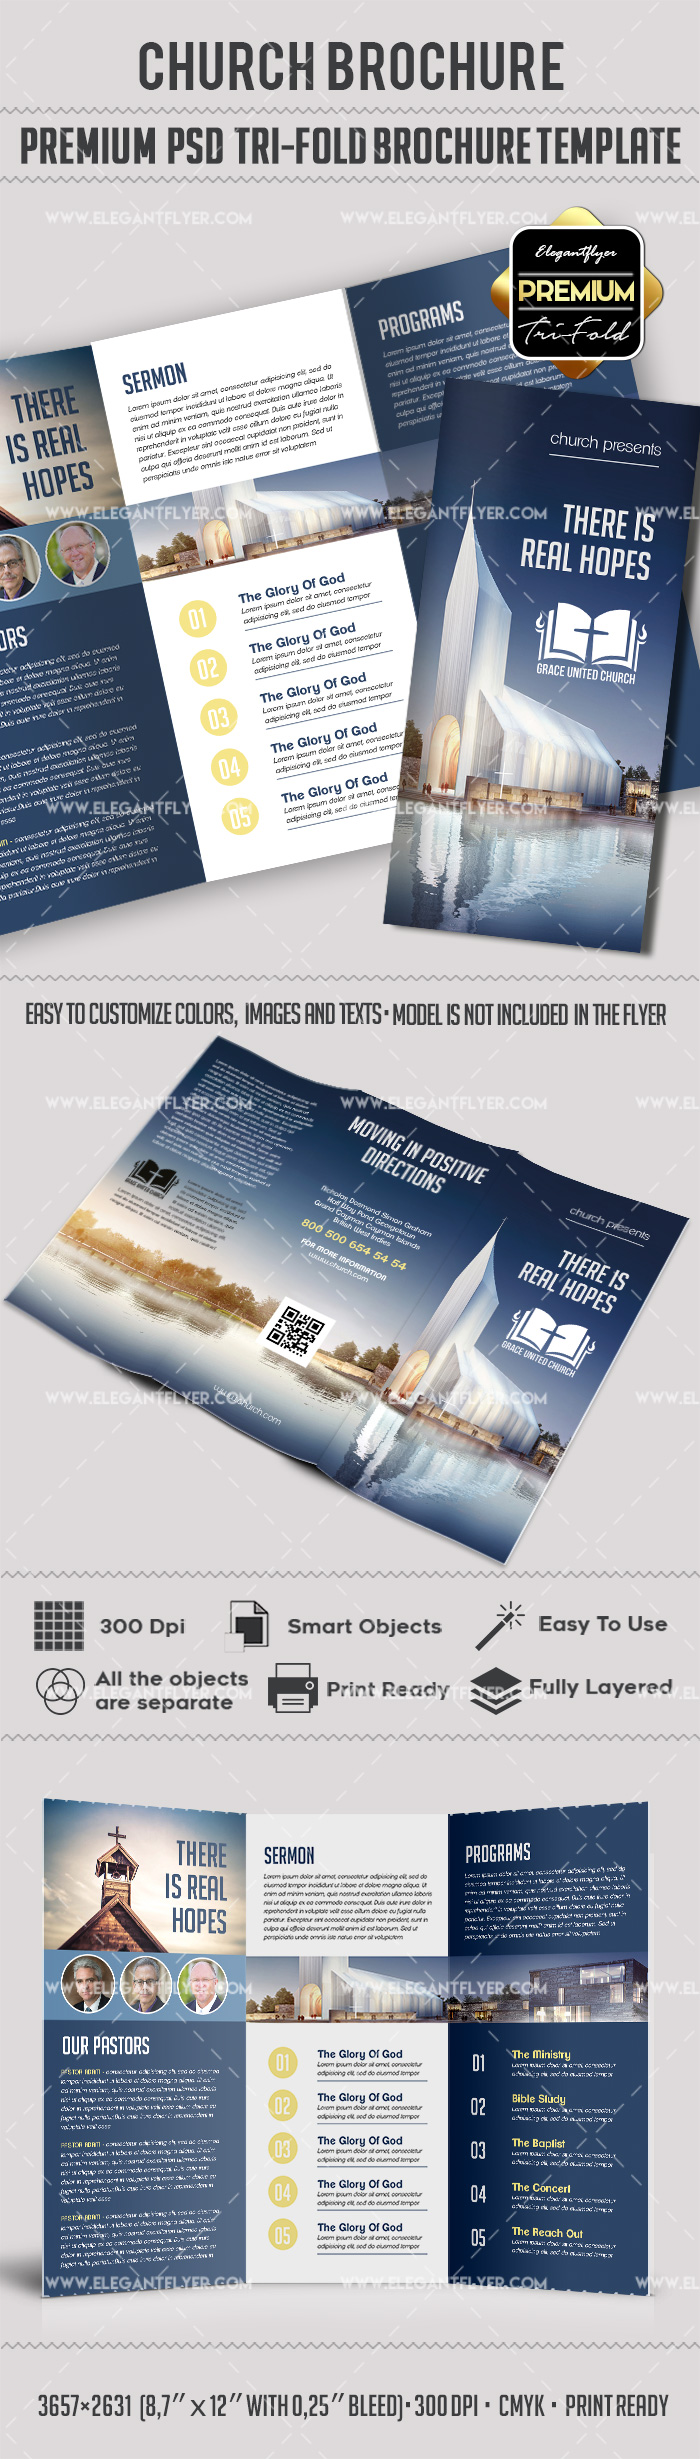 Church premium tri fold psd brochure template by for Tri fold brochure template psd